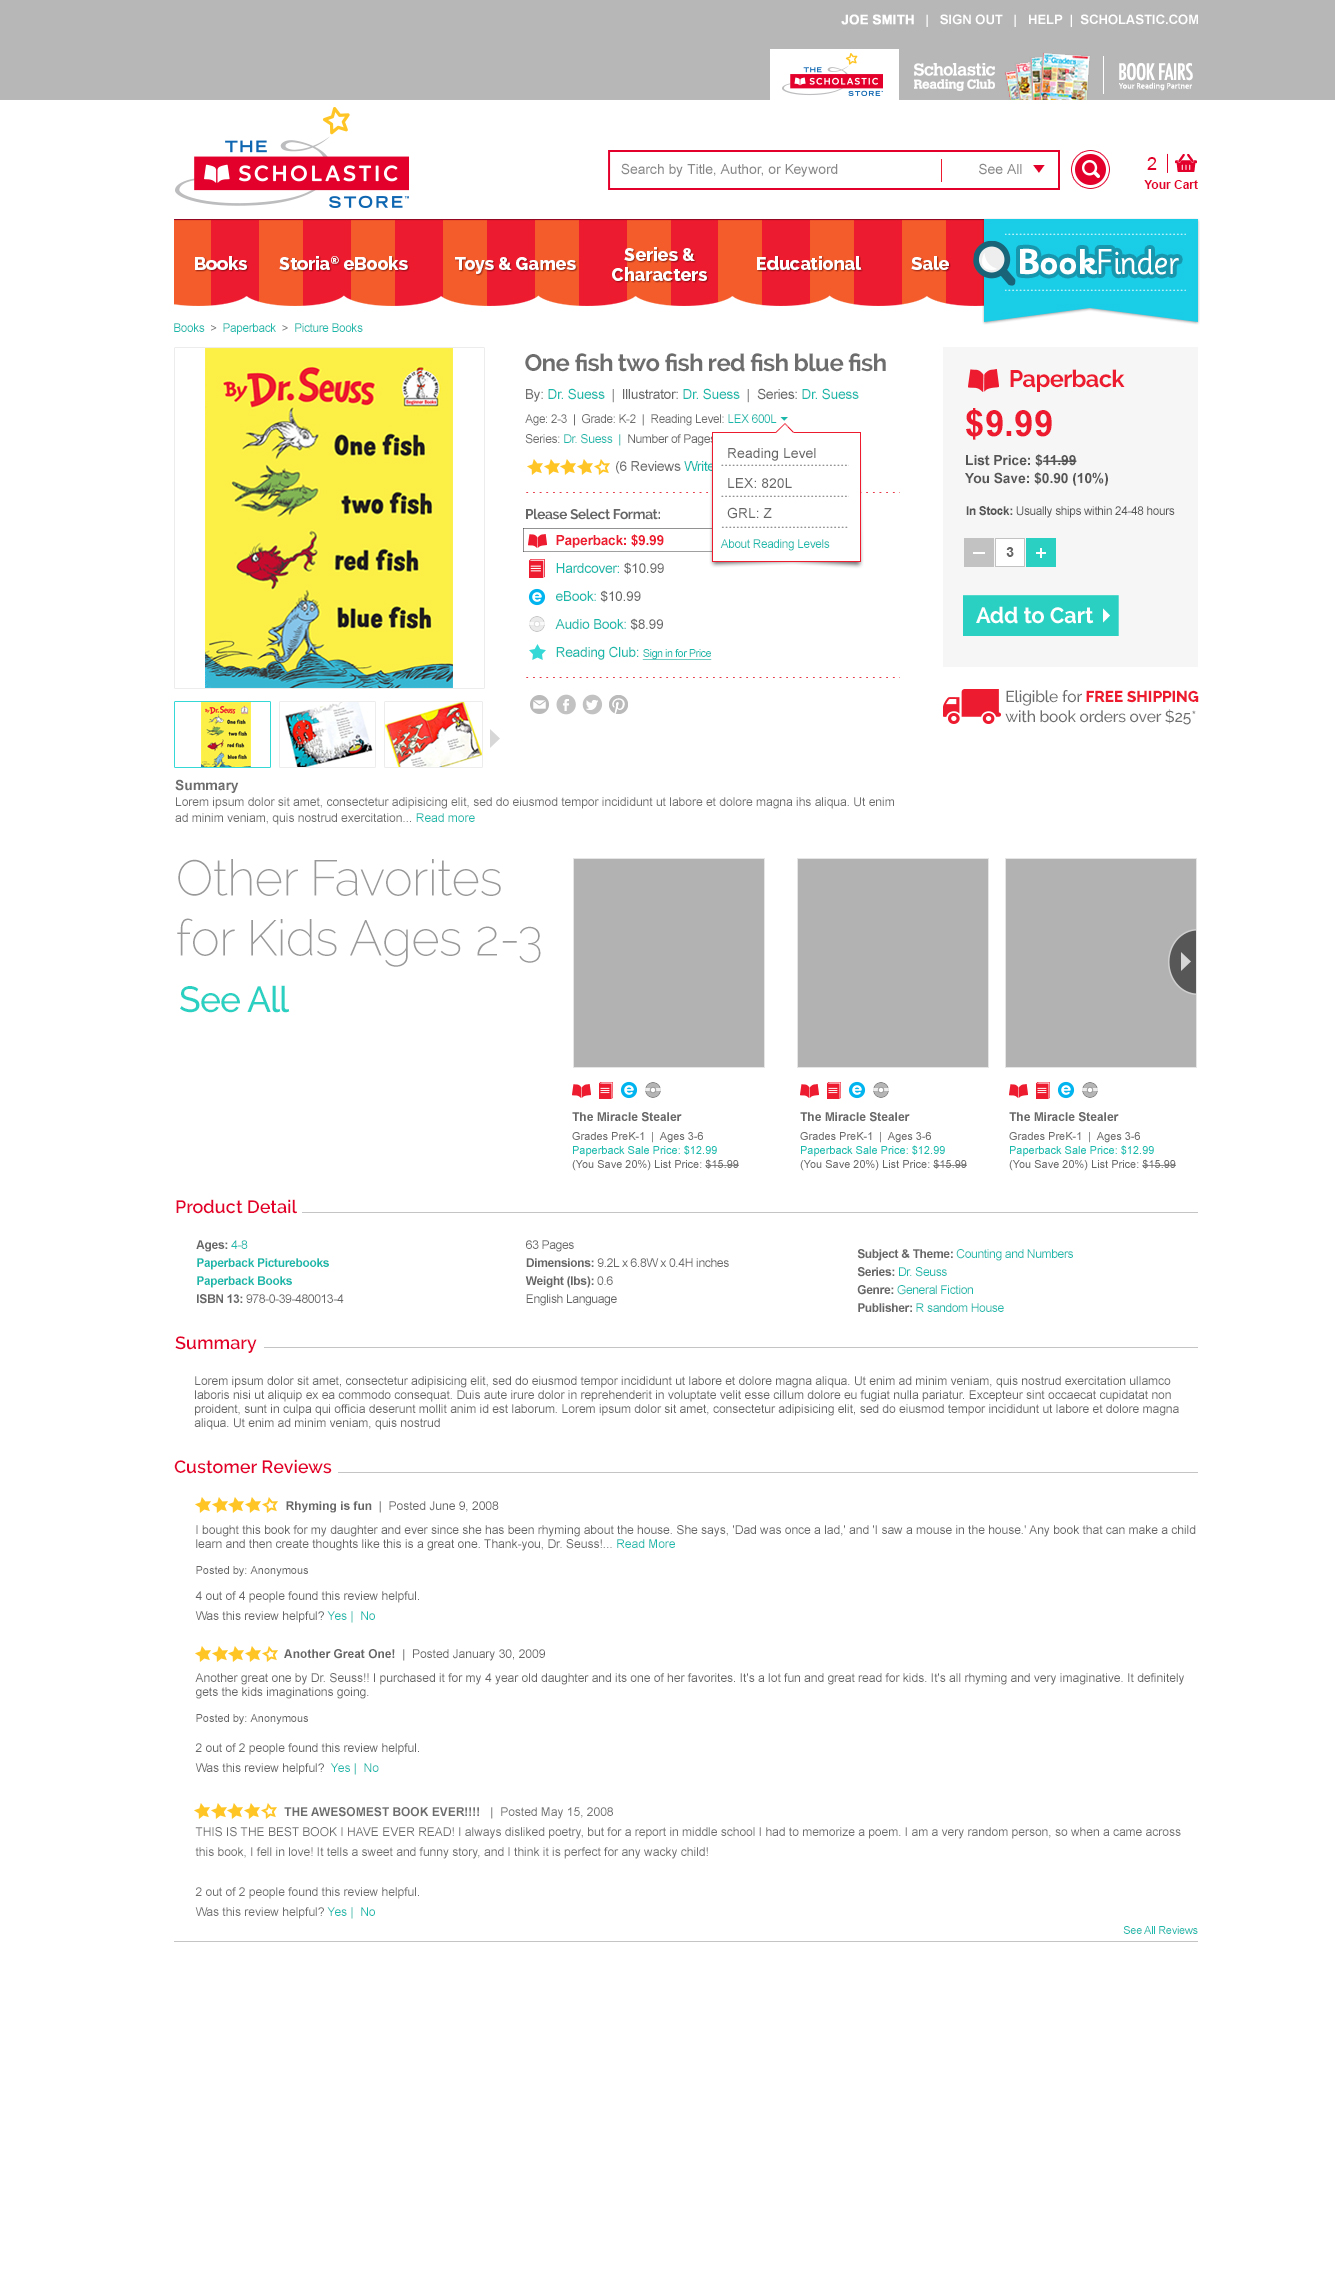 Scholastic Store Online Product detail page.